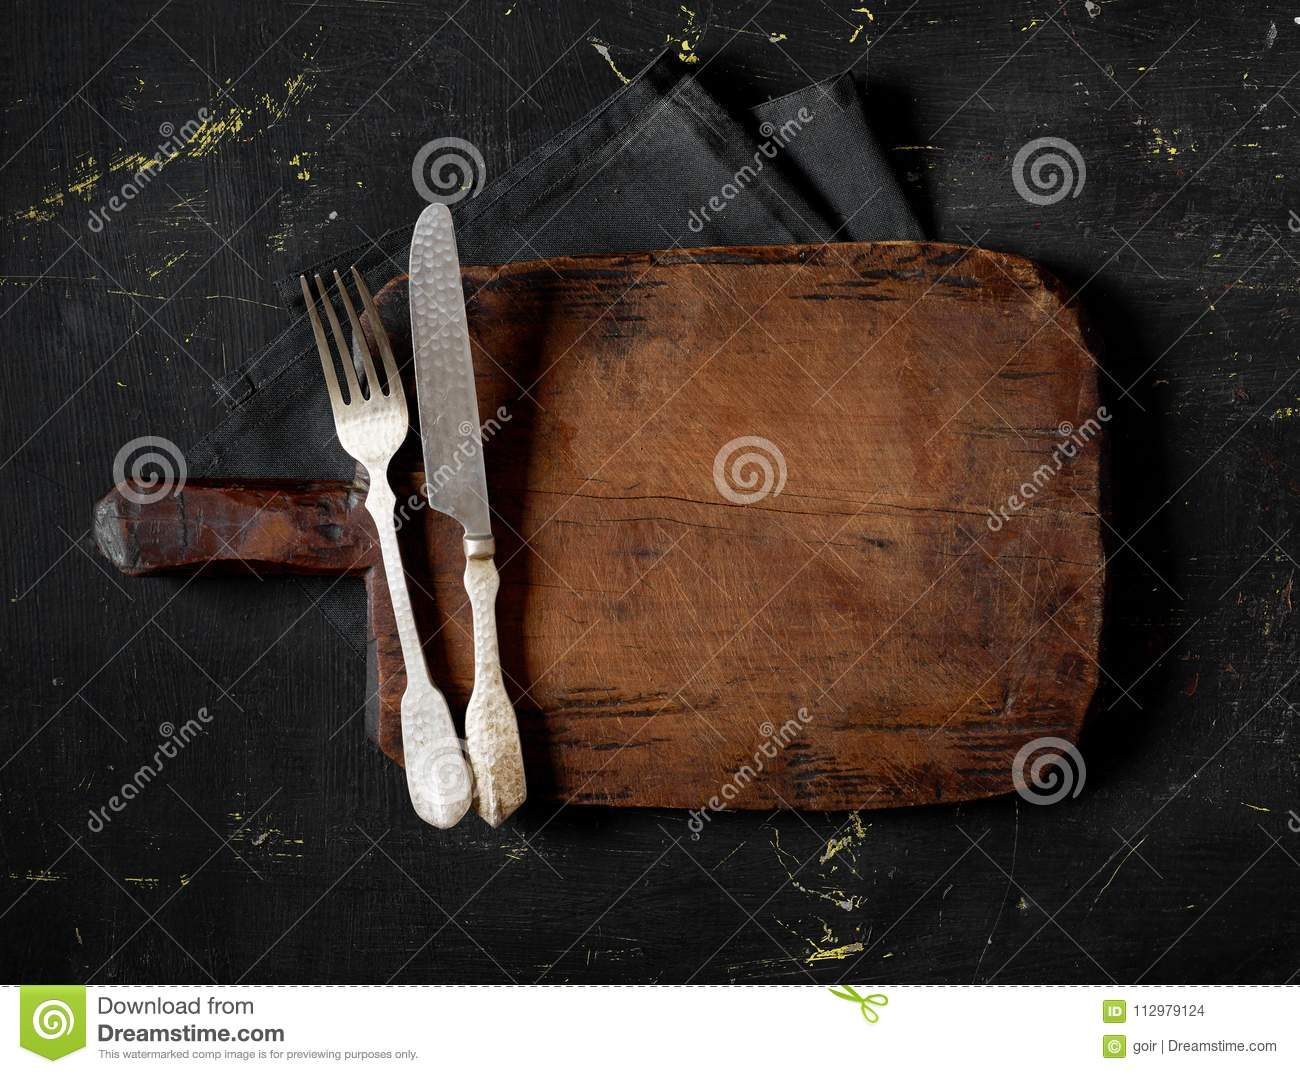 Fork, knife and cutting board